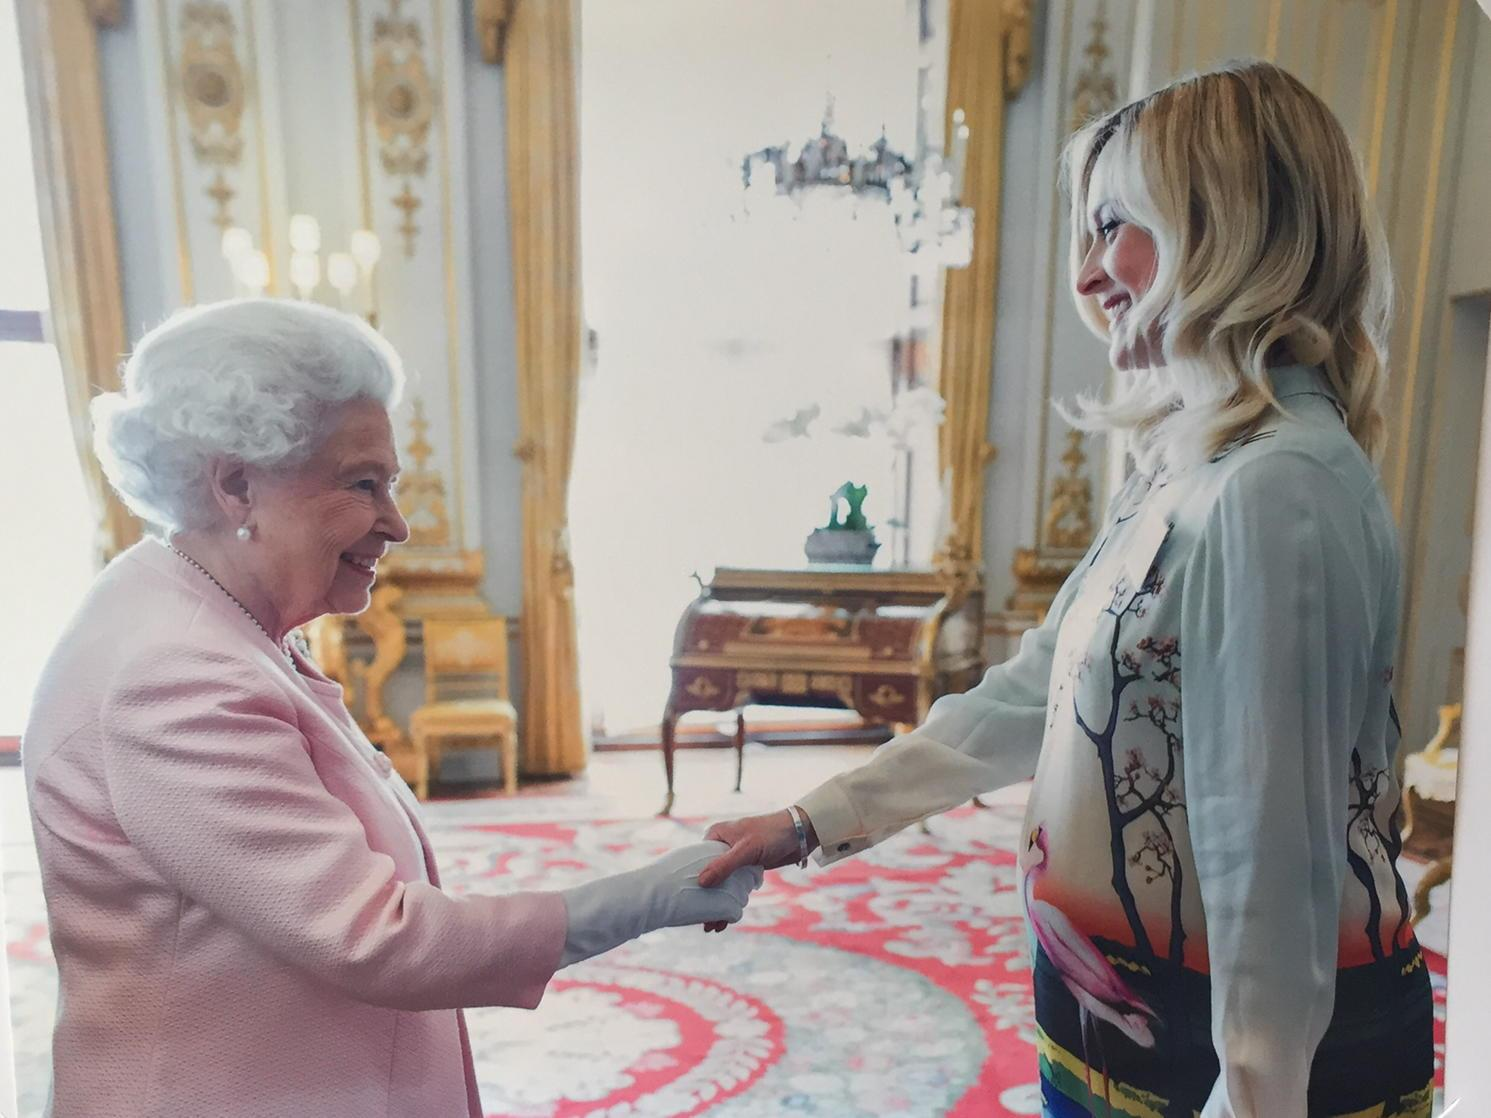 It was wonderful to be part of the young leader initiative and to meet the queen again earlier this summer. http://t.co/arylHqa3nR